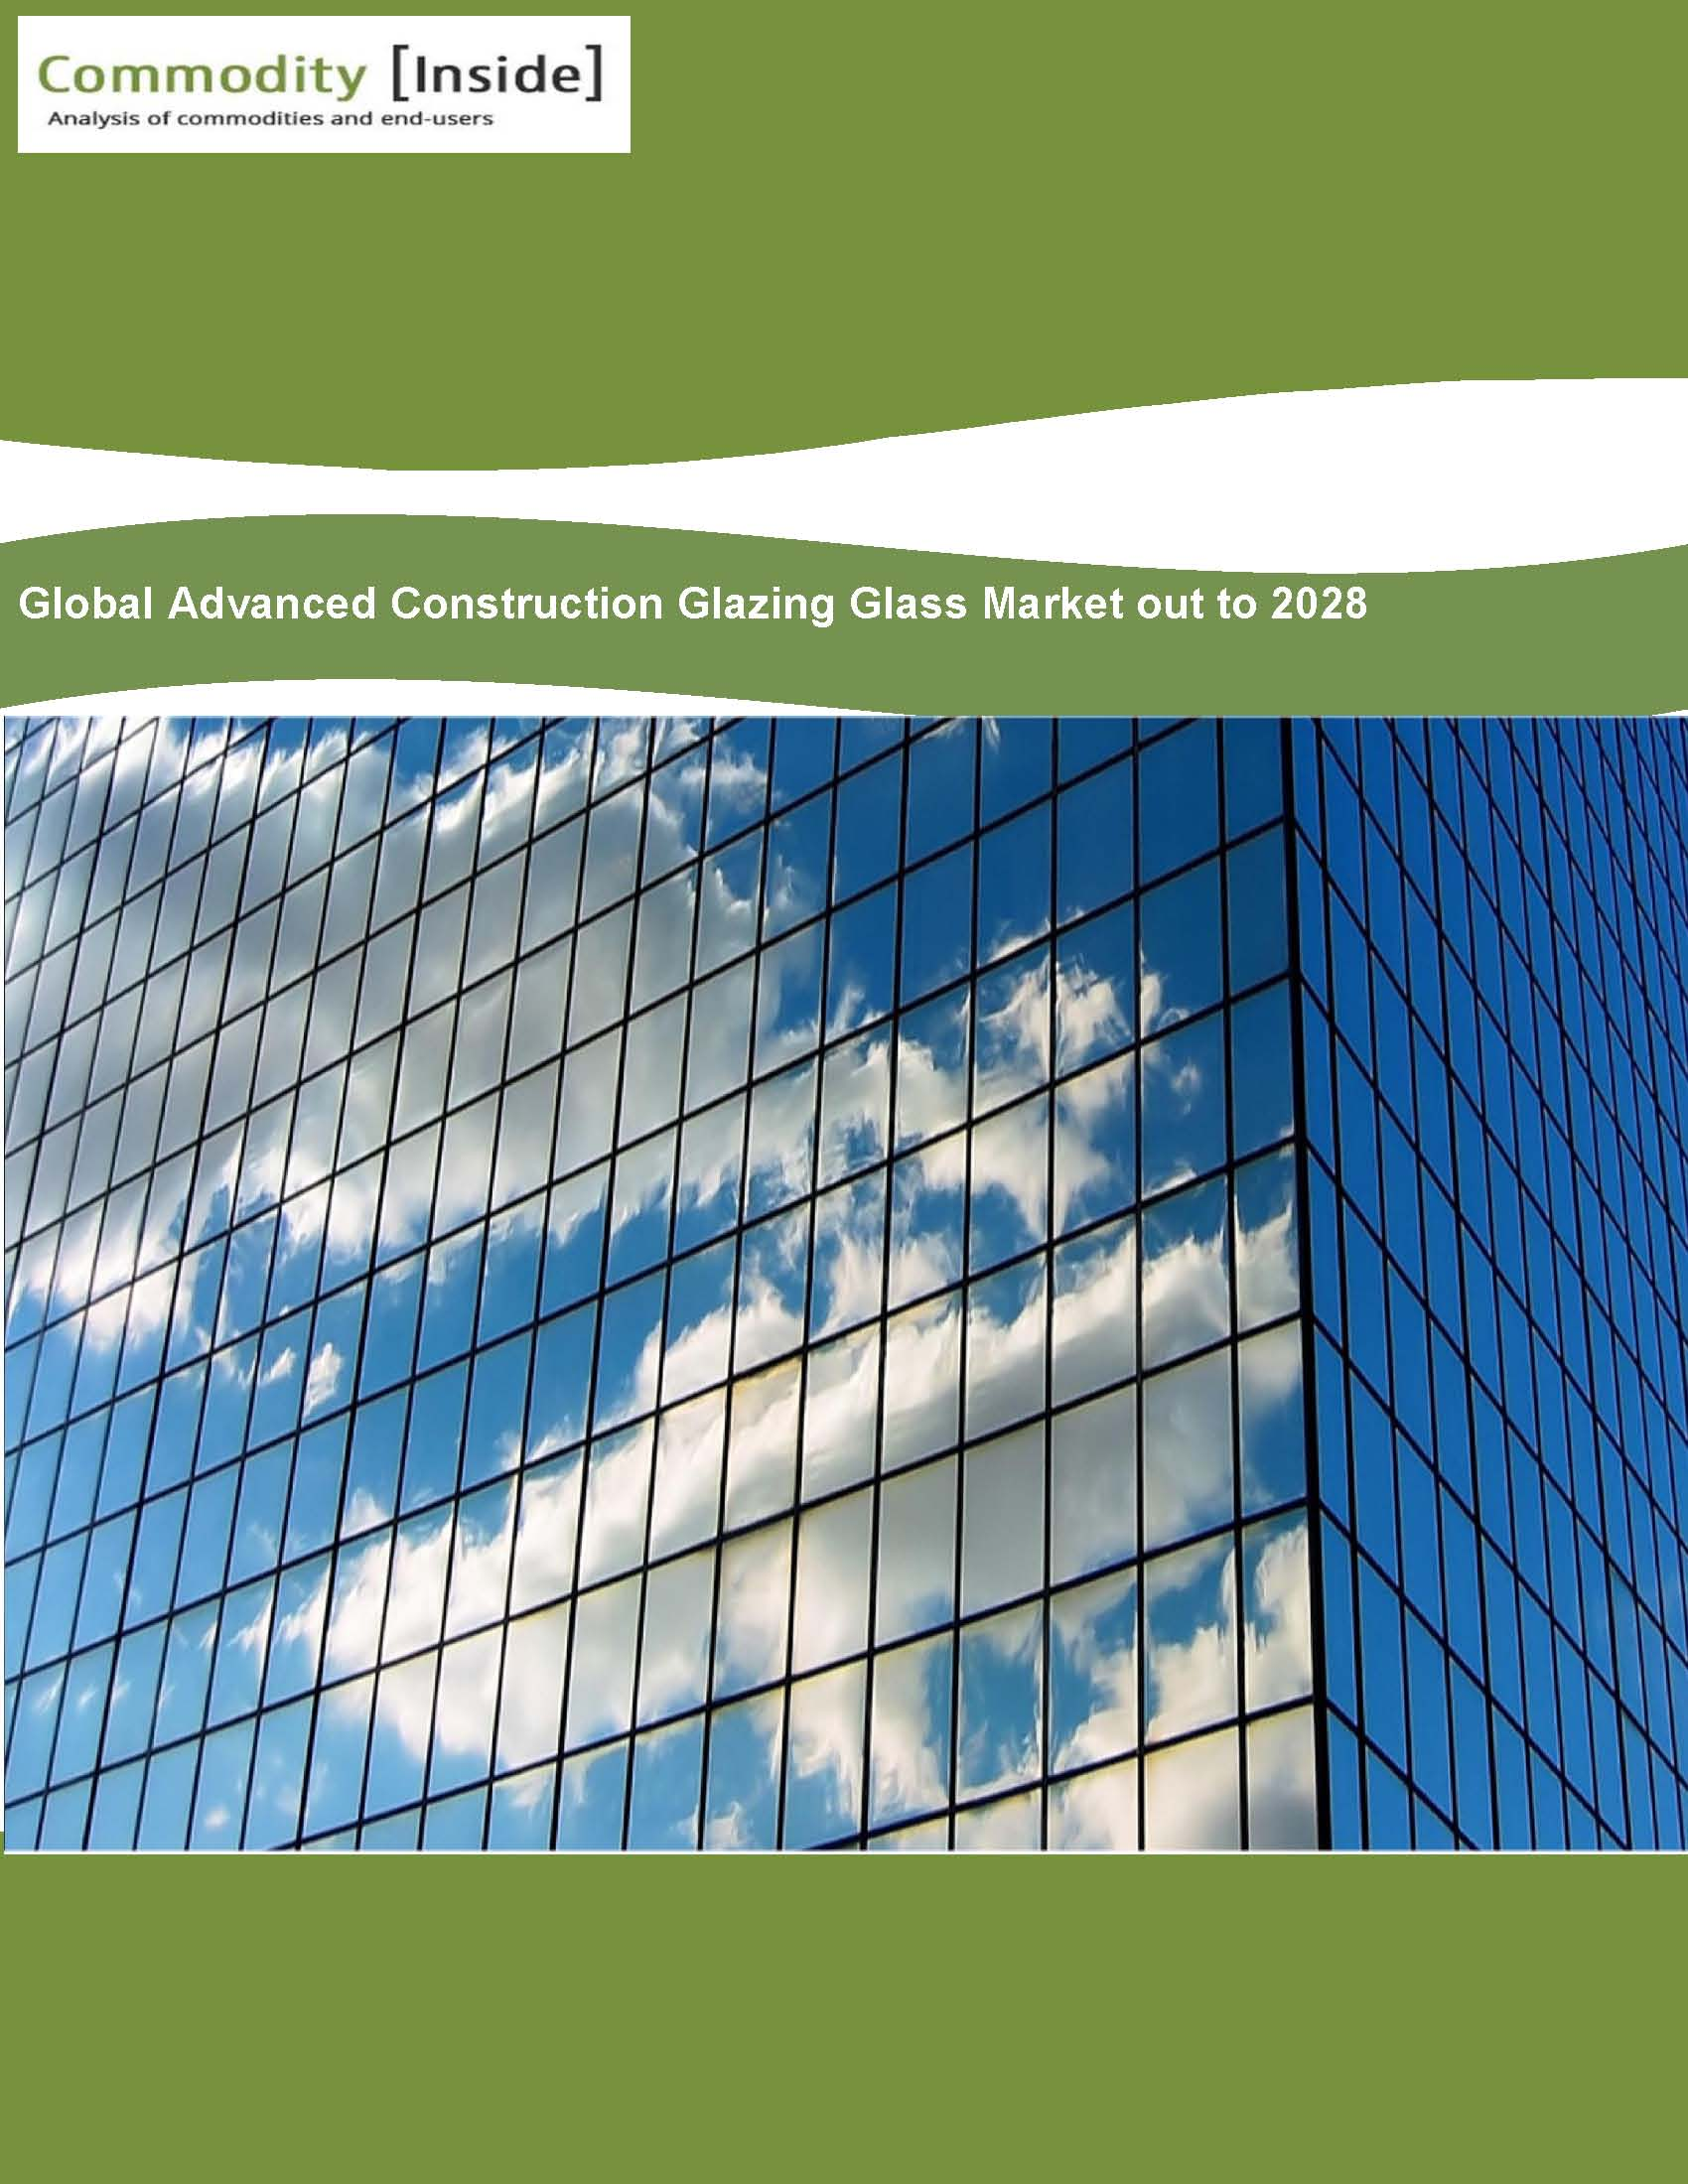 Global Advanced Construction Glazing Glass Market out to 2028